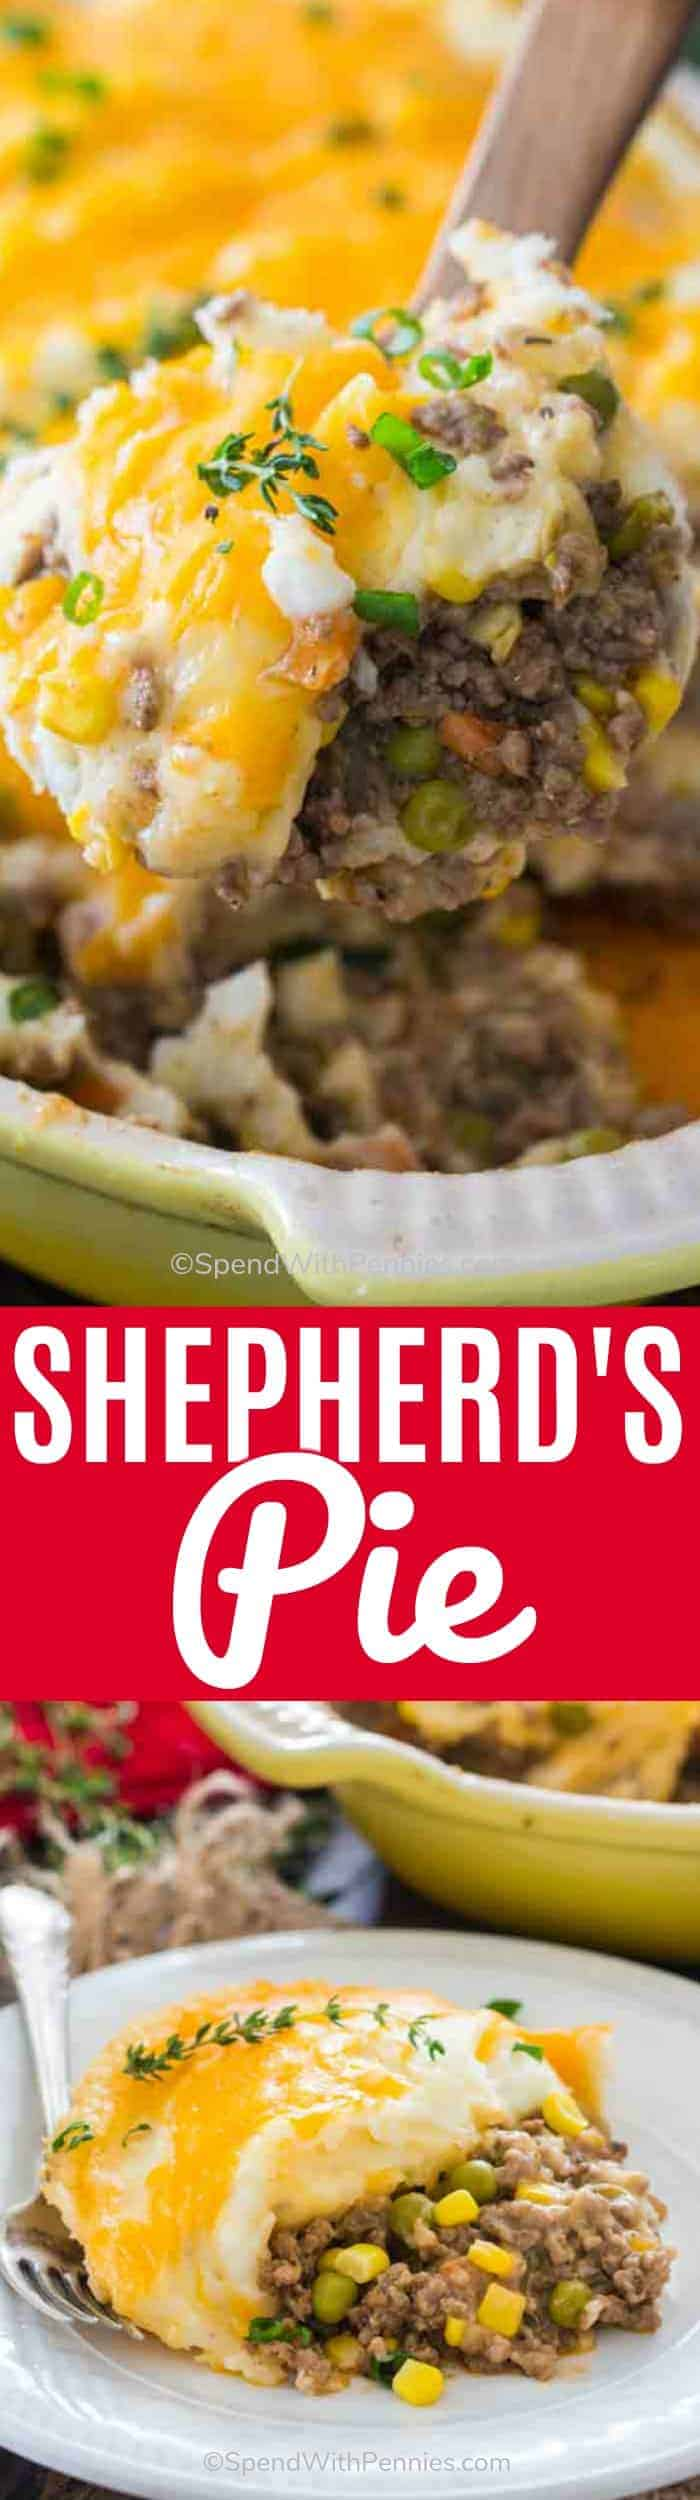 Shepherd's Pie is a traditional Irish dish made with ground lamb cooked with peas and carrots and topped with a mashed potato crust. Easy and tasty, all year round! #shepherdspie #groundlamb #groundbeef #spendwithpennies #mashedpotatoes #easyrecipe